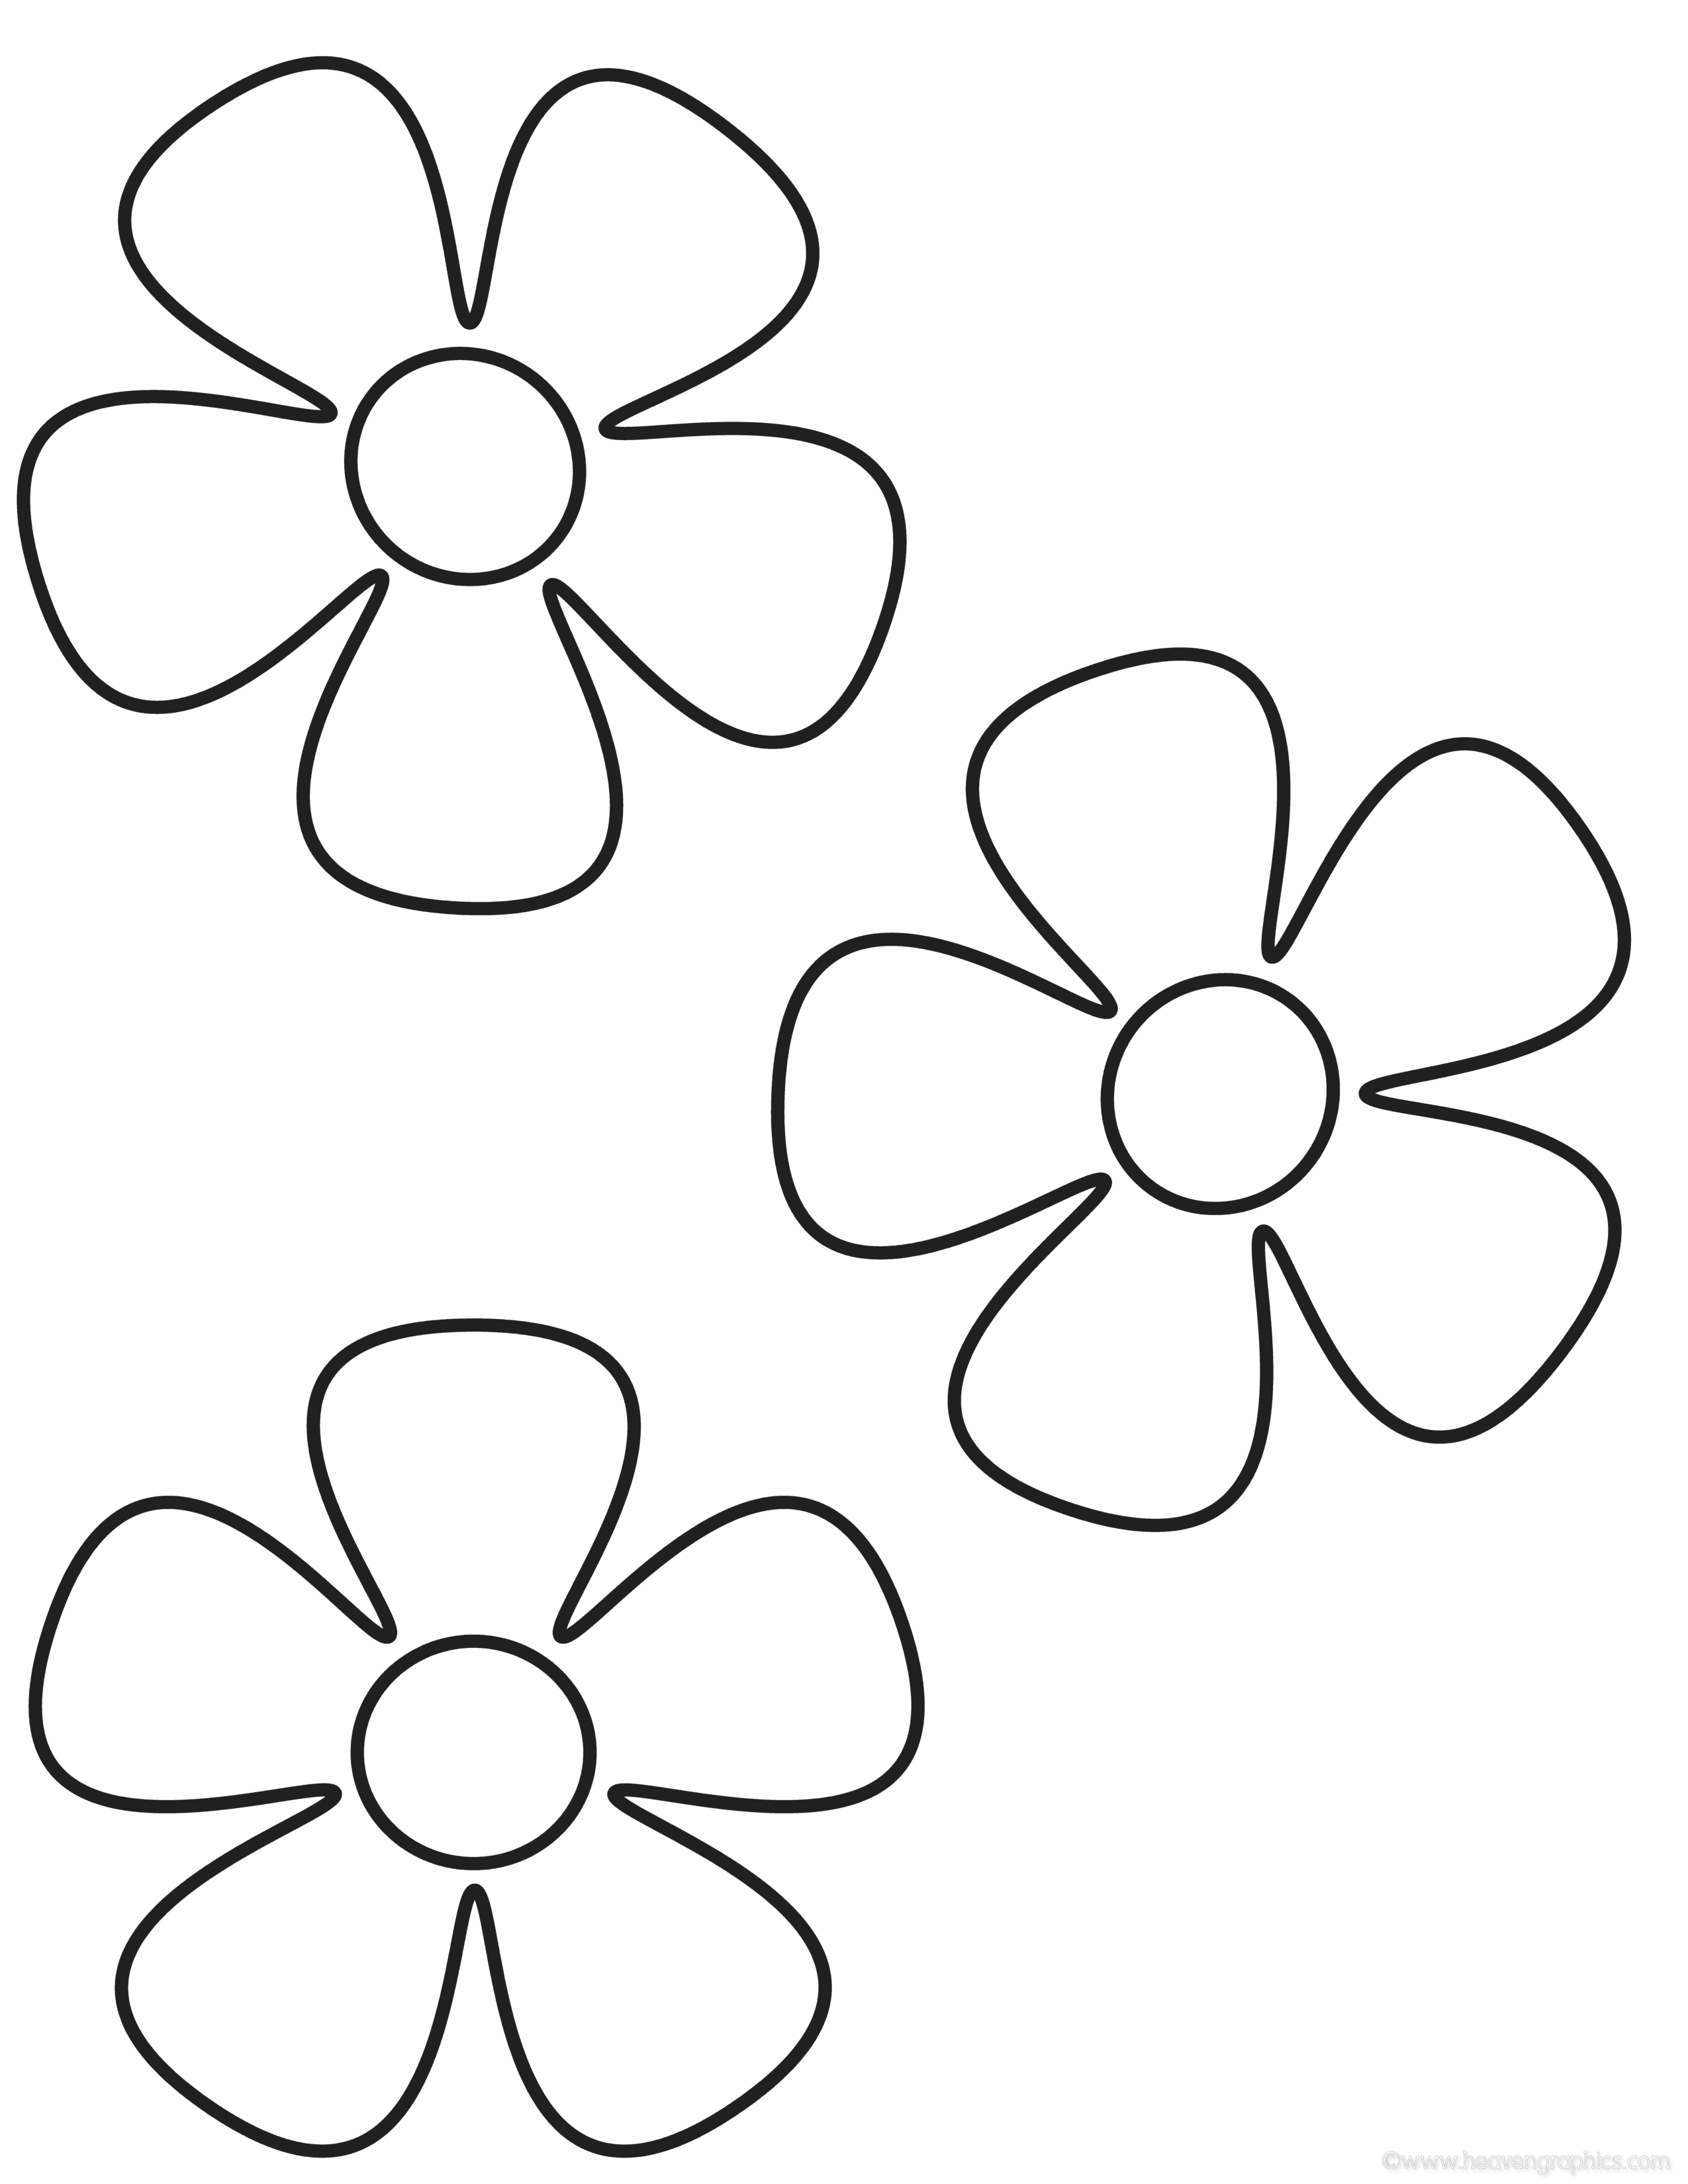 images of flowers to color free printable lotus coloring pages for kids of images color flowers to